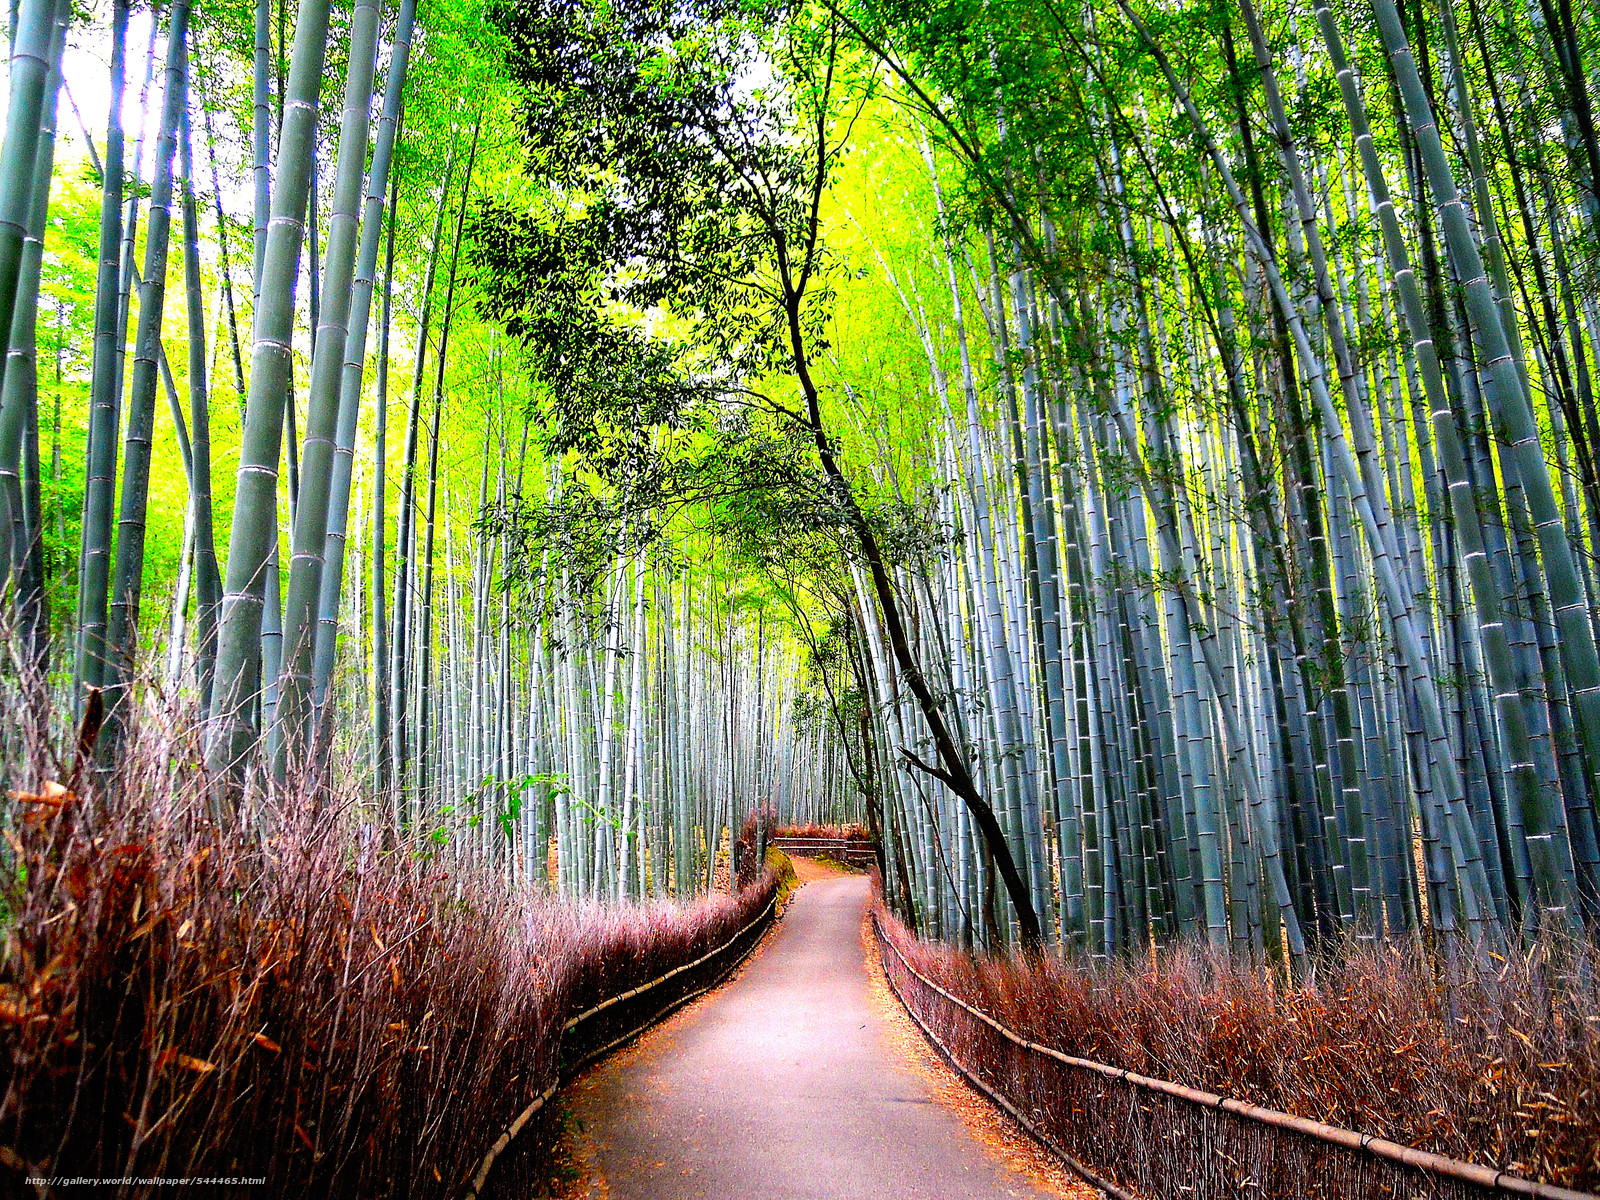 Download wallpaper bamboo forest road nature free desktop wallpaper in the resolution - Wallpaper 3000 x 4000 ...